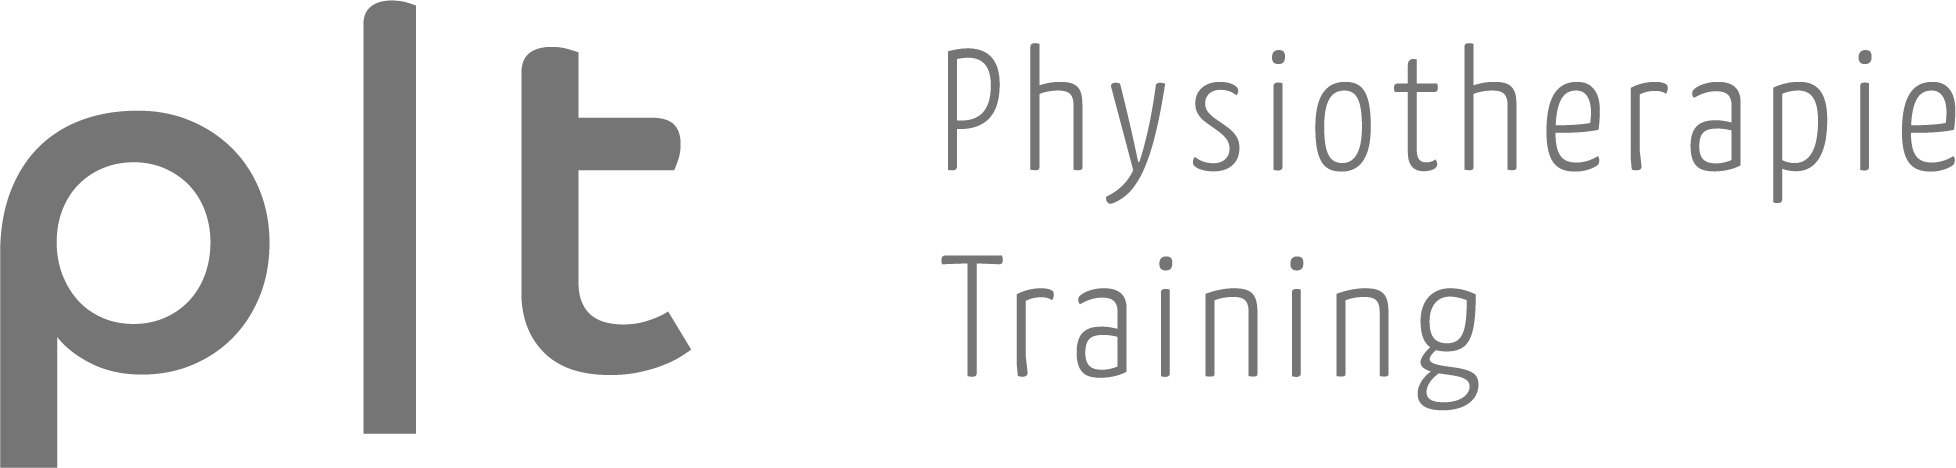 Logo Physiotherapie und Training